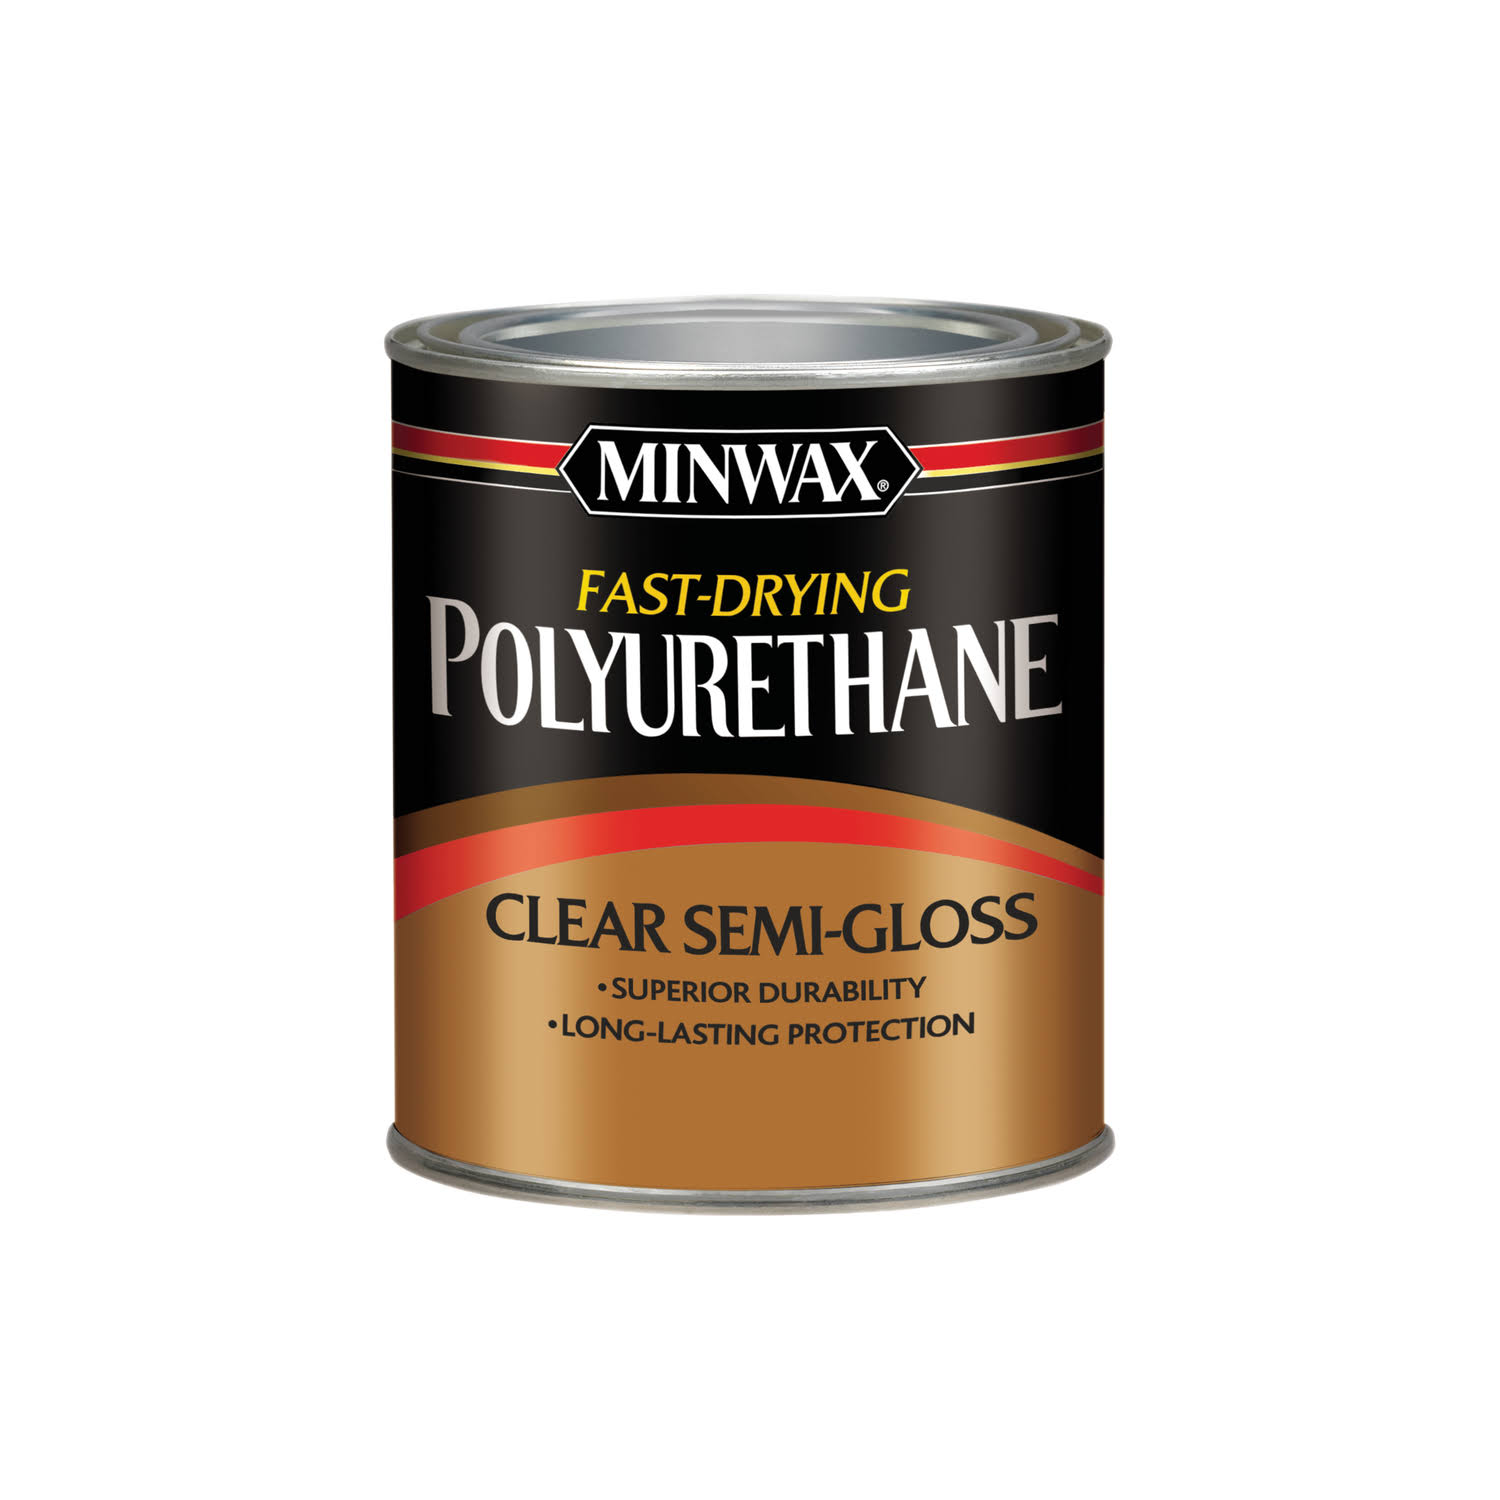 Minwax Fast Drying Polyurethane Varnish - Clear, Semi-Gloss Finish, 1 Quart